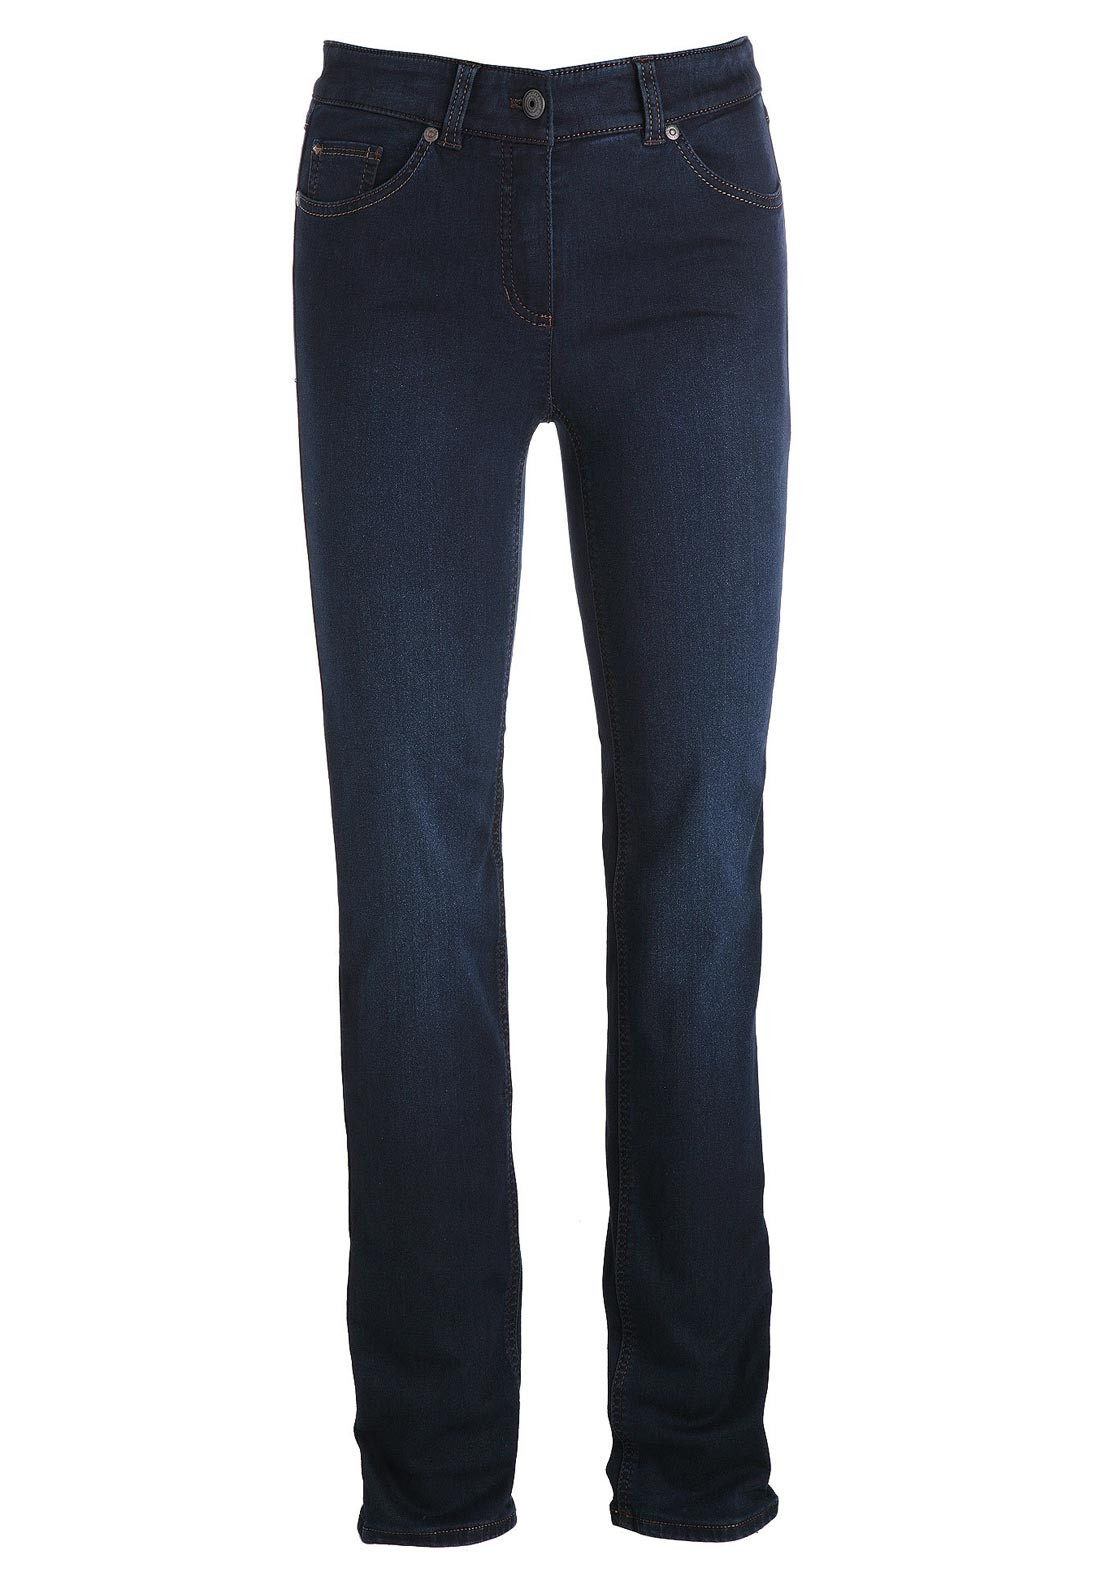 Gerry Weber Roxy Slim Jeans, Dark Blue Denim